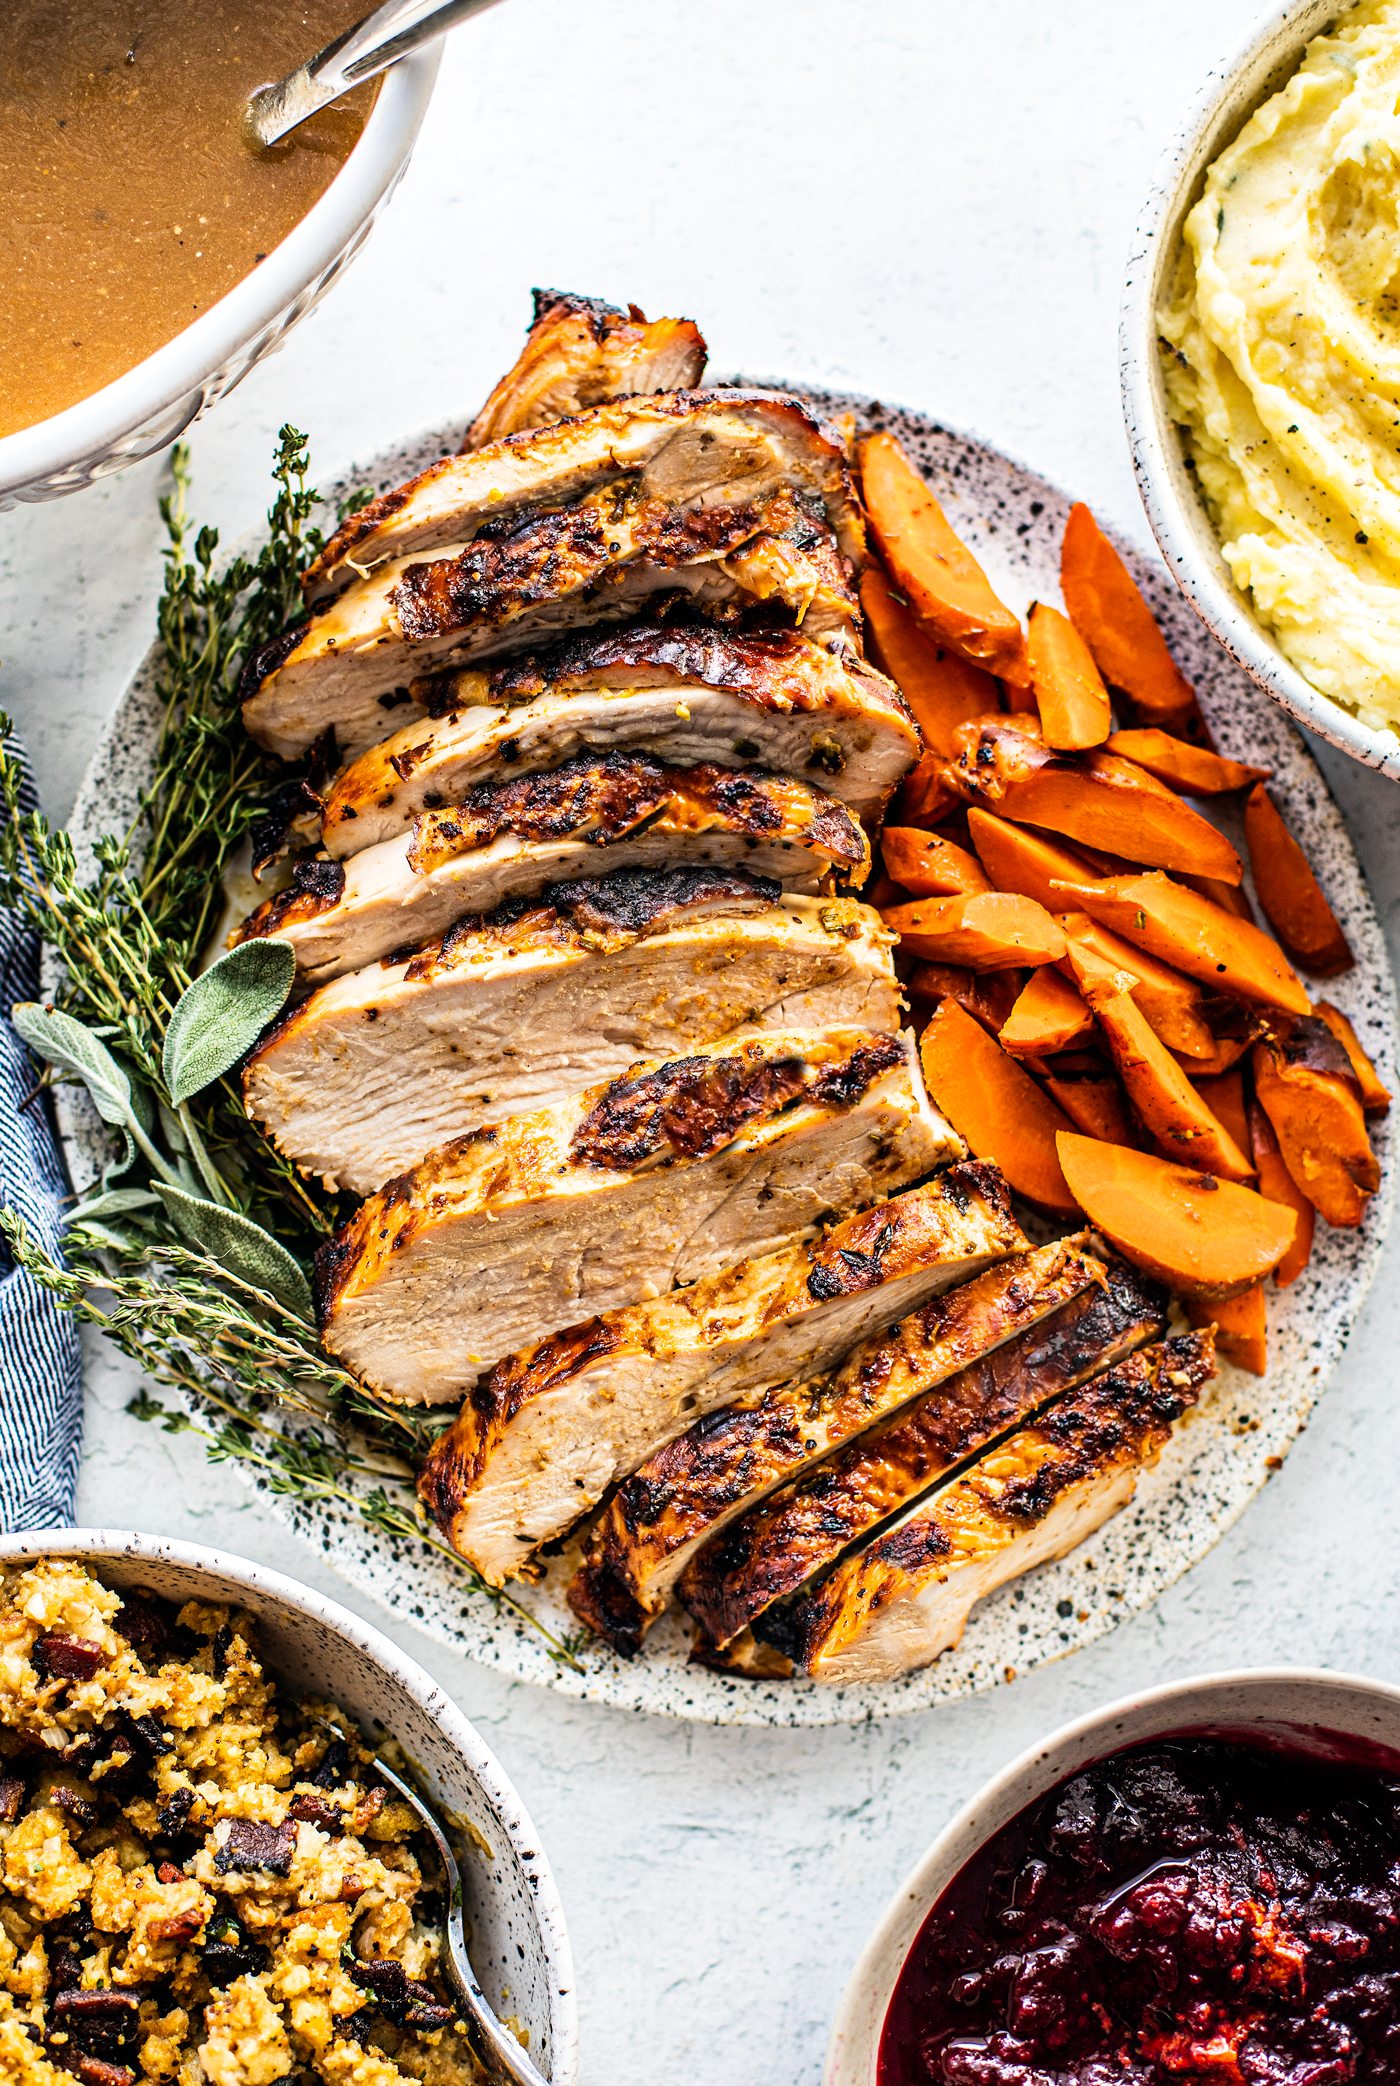 Sliced turkey breast on a serving platter with cooked carrots and fresh herbs.